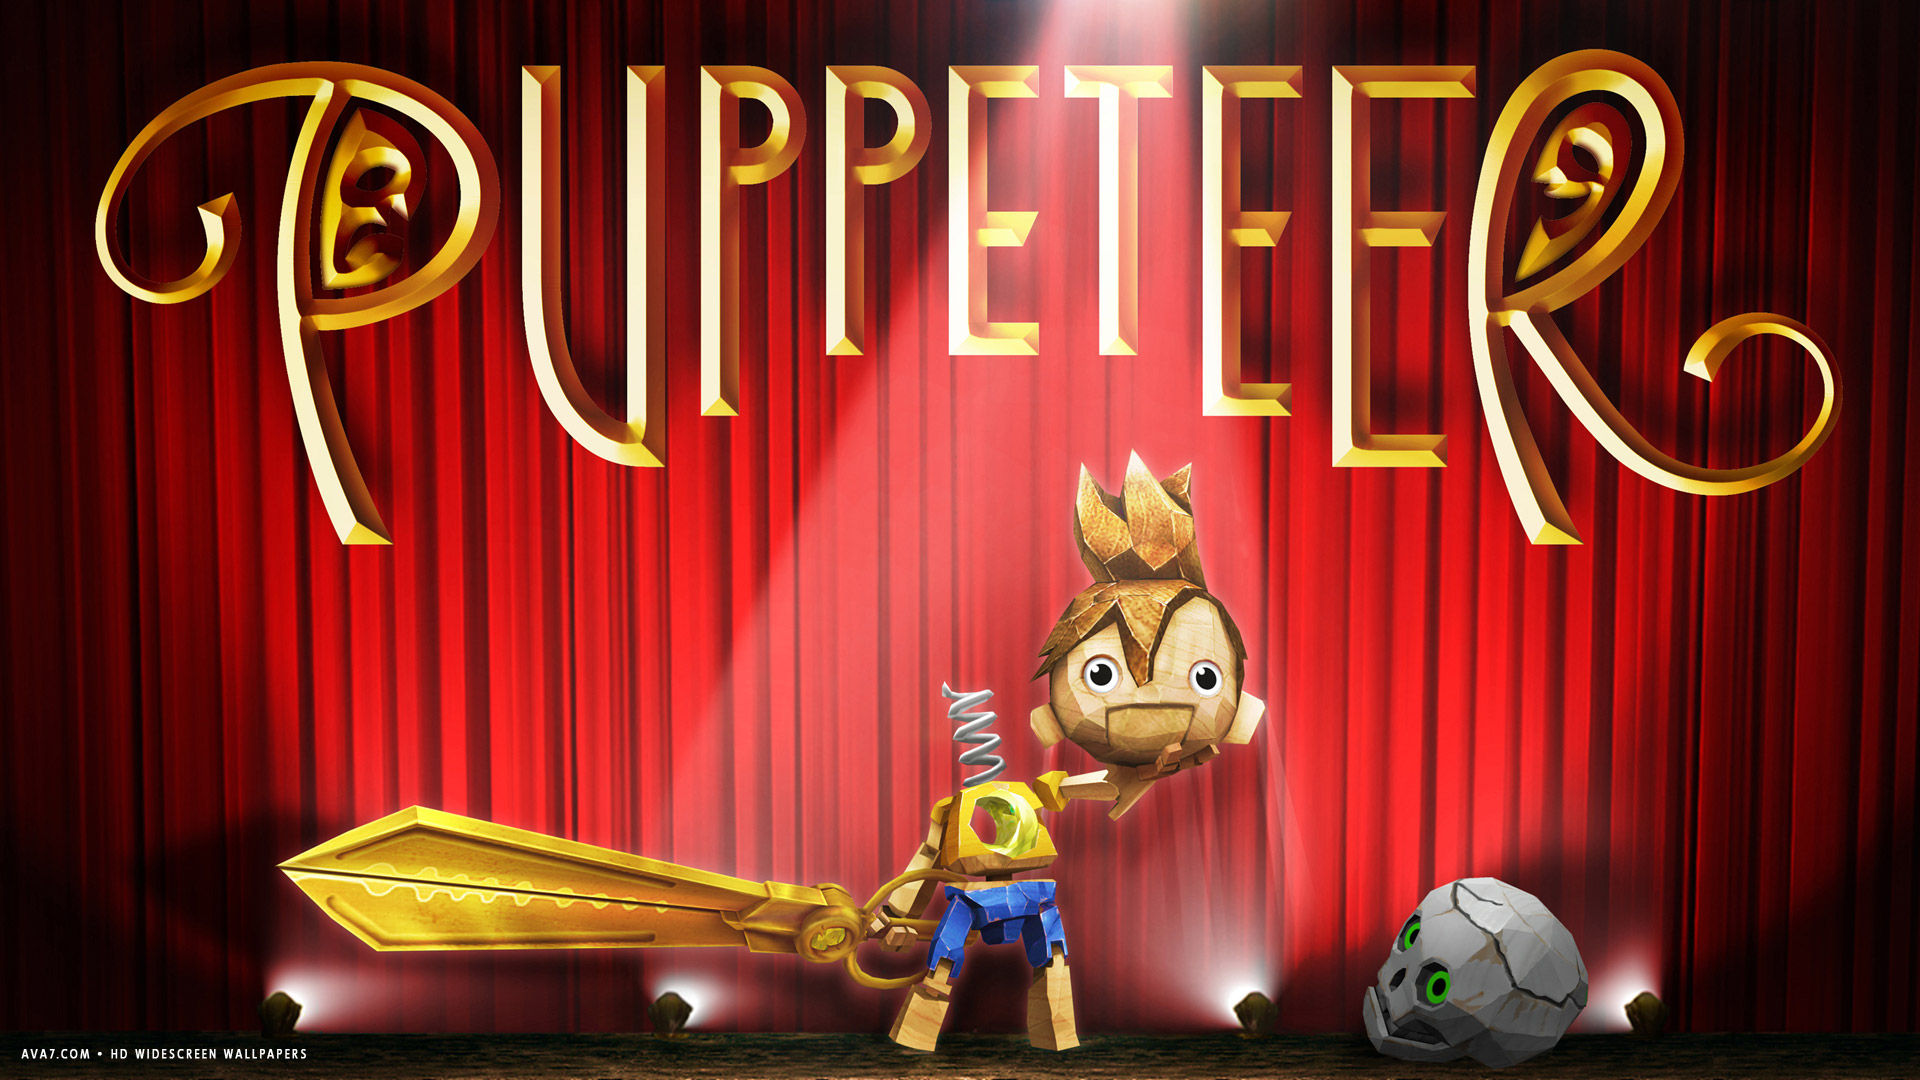 puppeteer game hd widescreen wallpaper